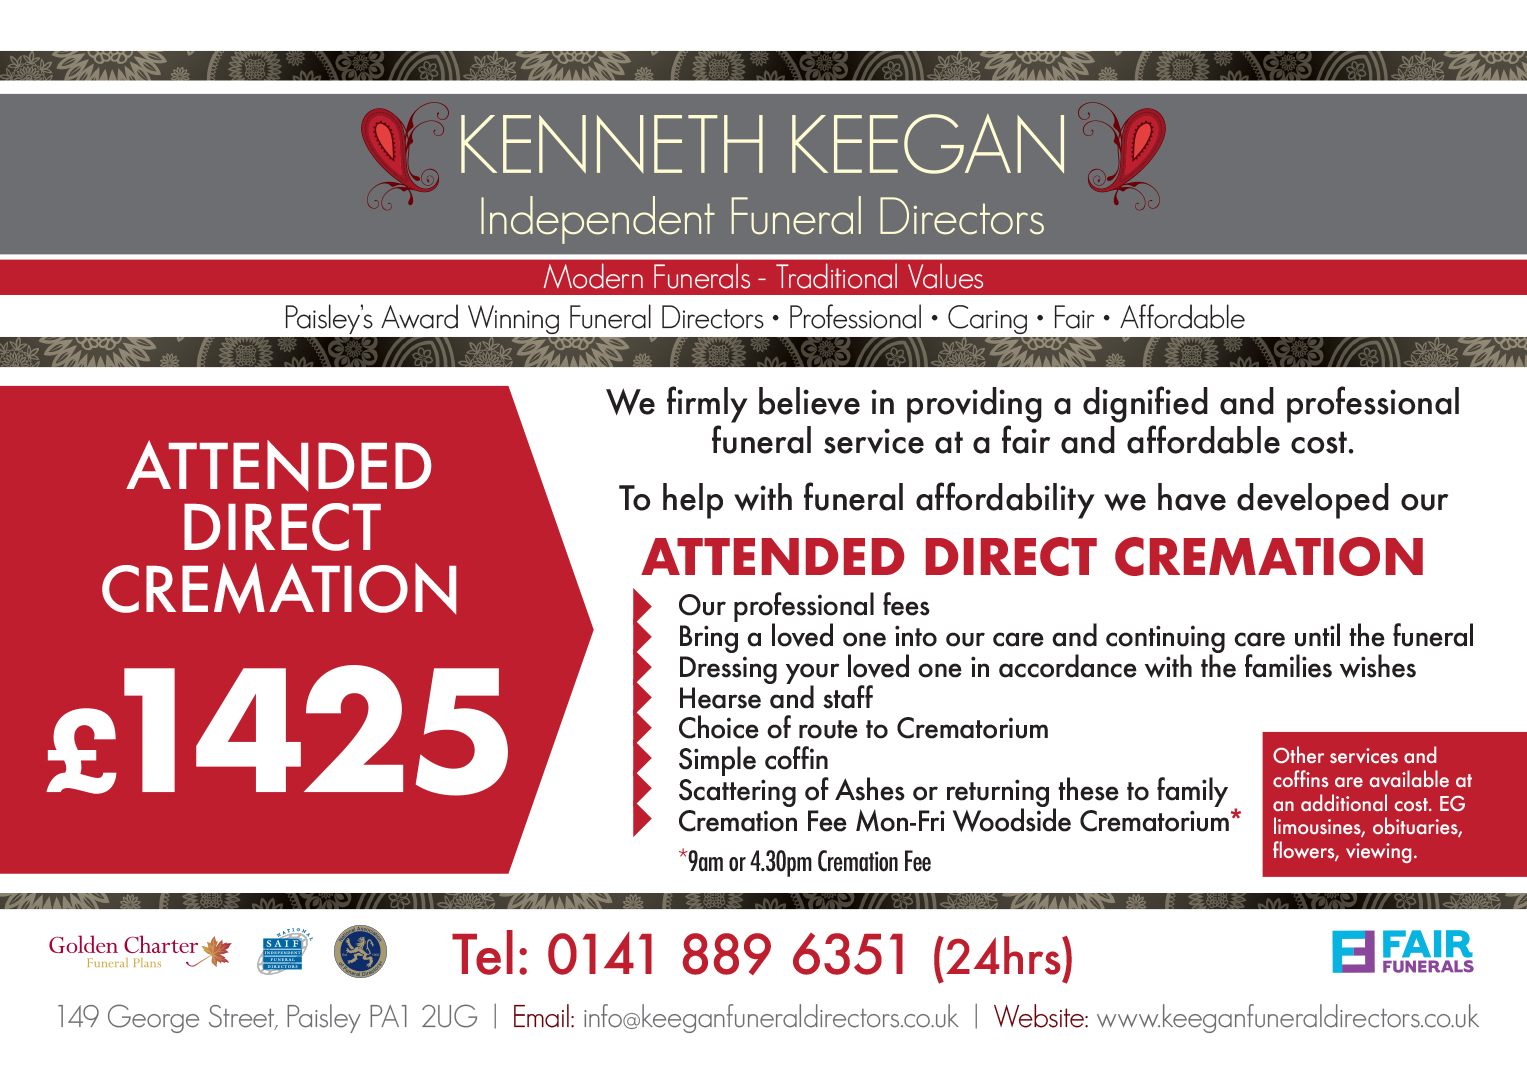 Kenneth-Keegan-Attended-Direct-Cremation-A4L-03-05-2021